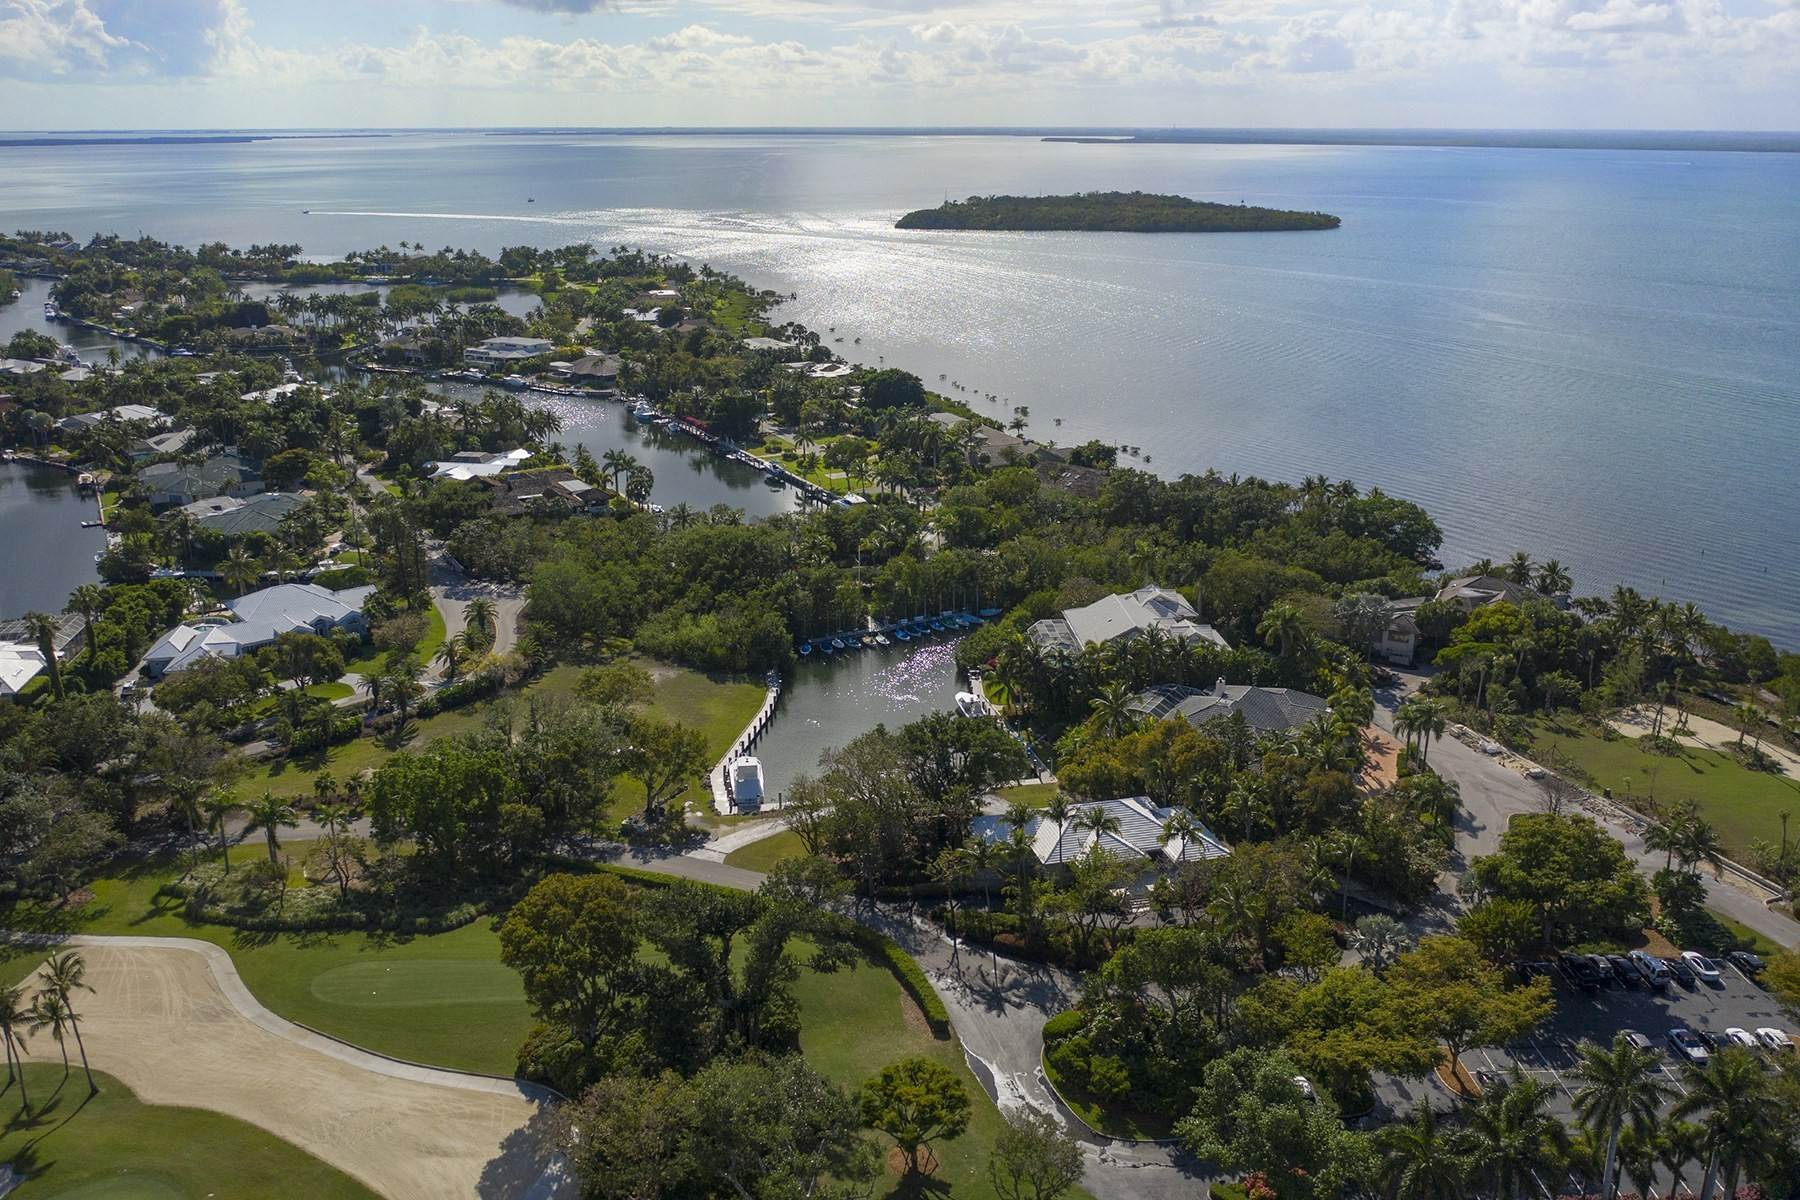 15. Property for Sale at Pumpkin Key - Private Island, Key Largo, FL Pumpkin Key - Private Island Key Largo, Florida 33037 United States